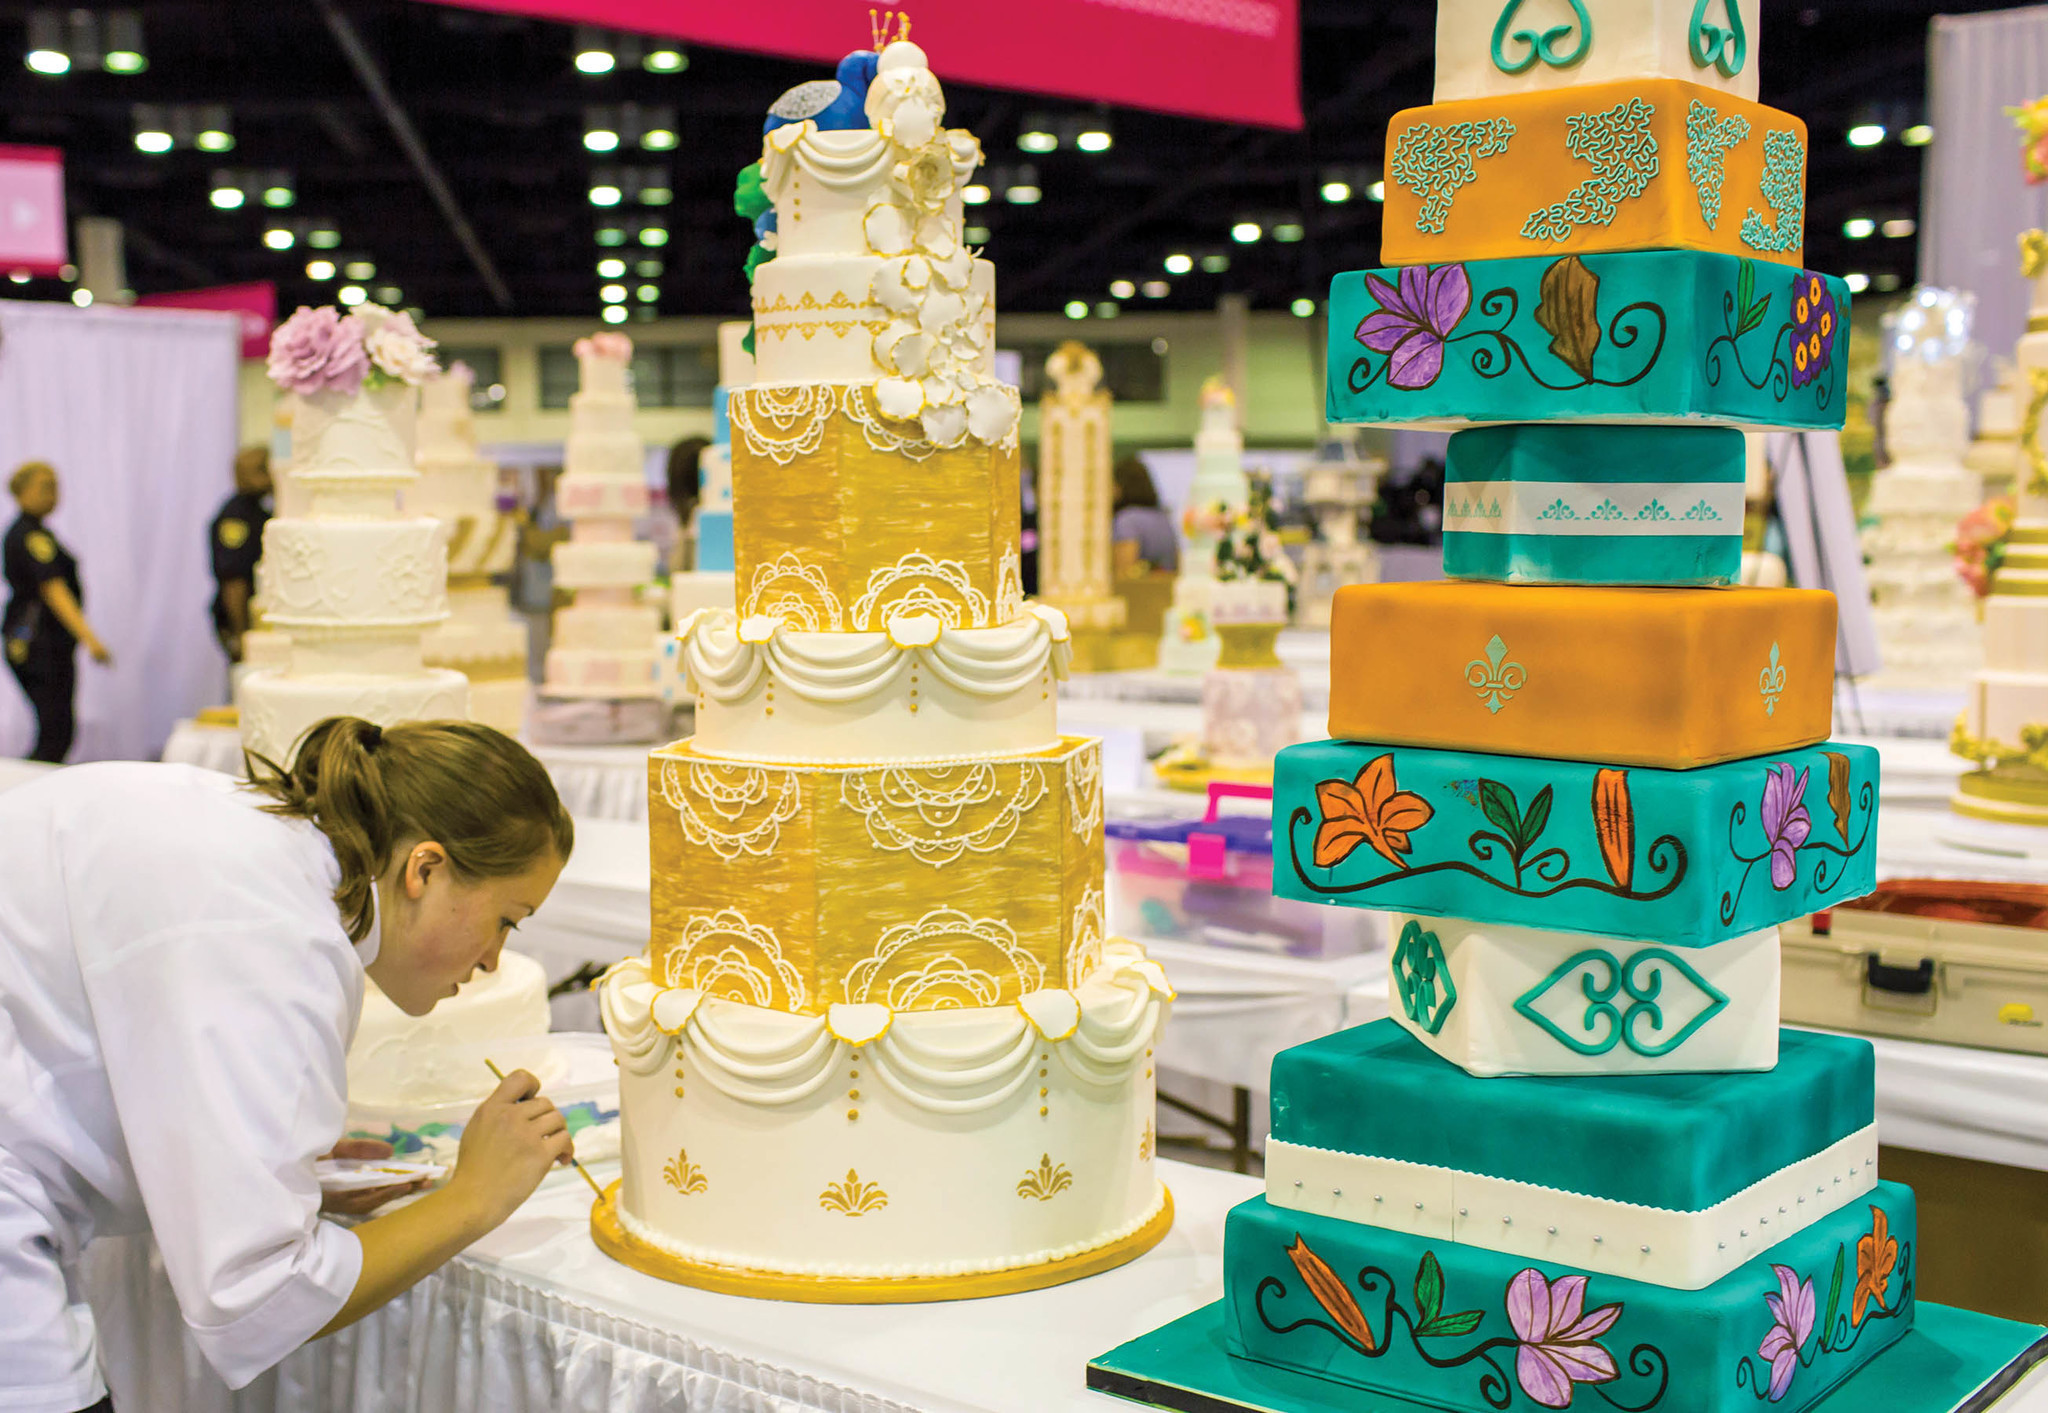 Tickets now on sale for The Americas Cake Fair - Orlando Sentinel